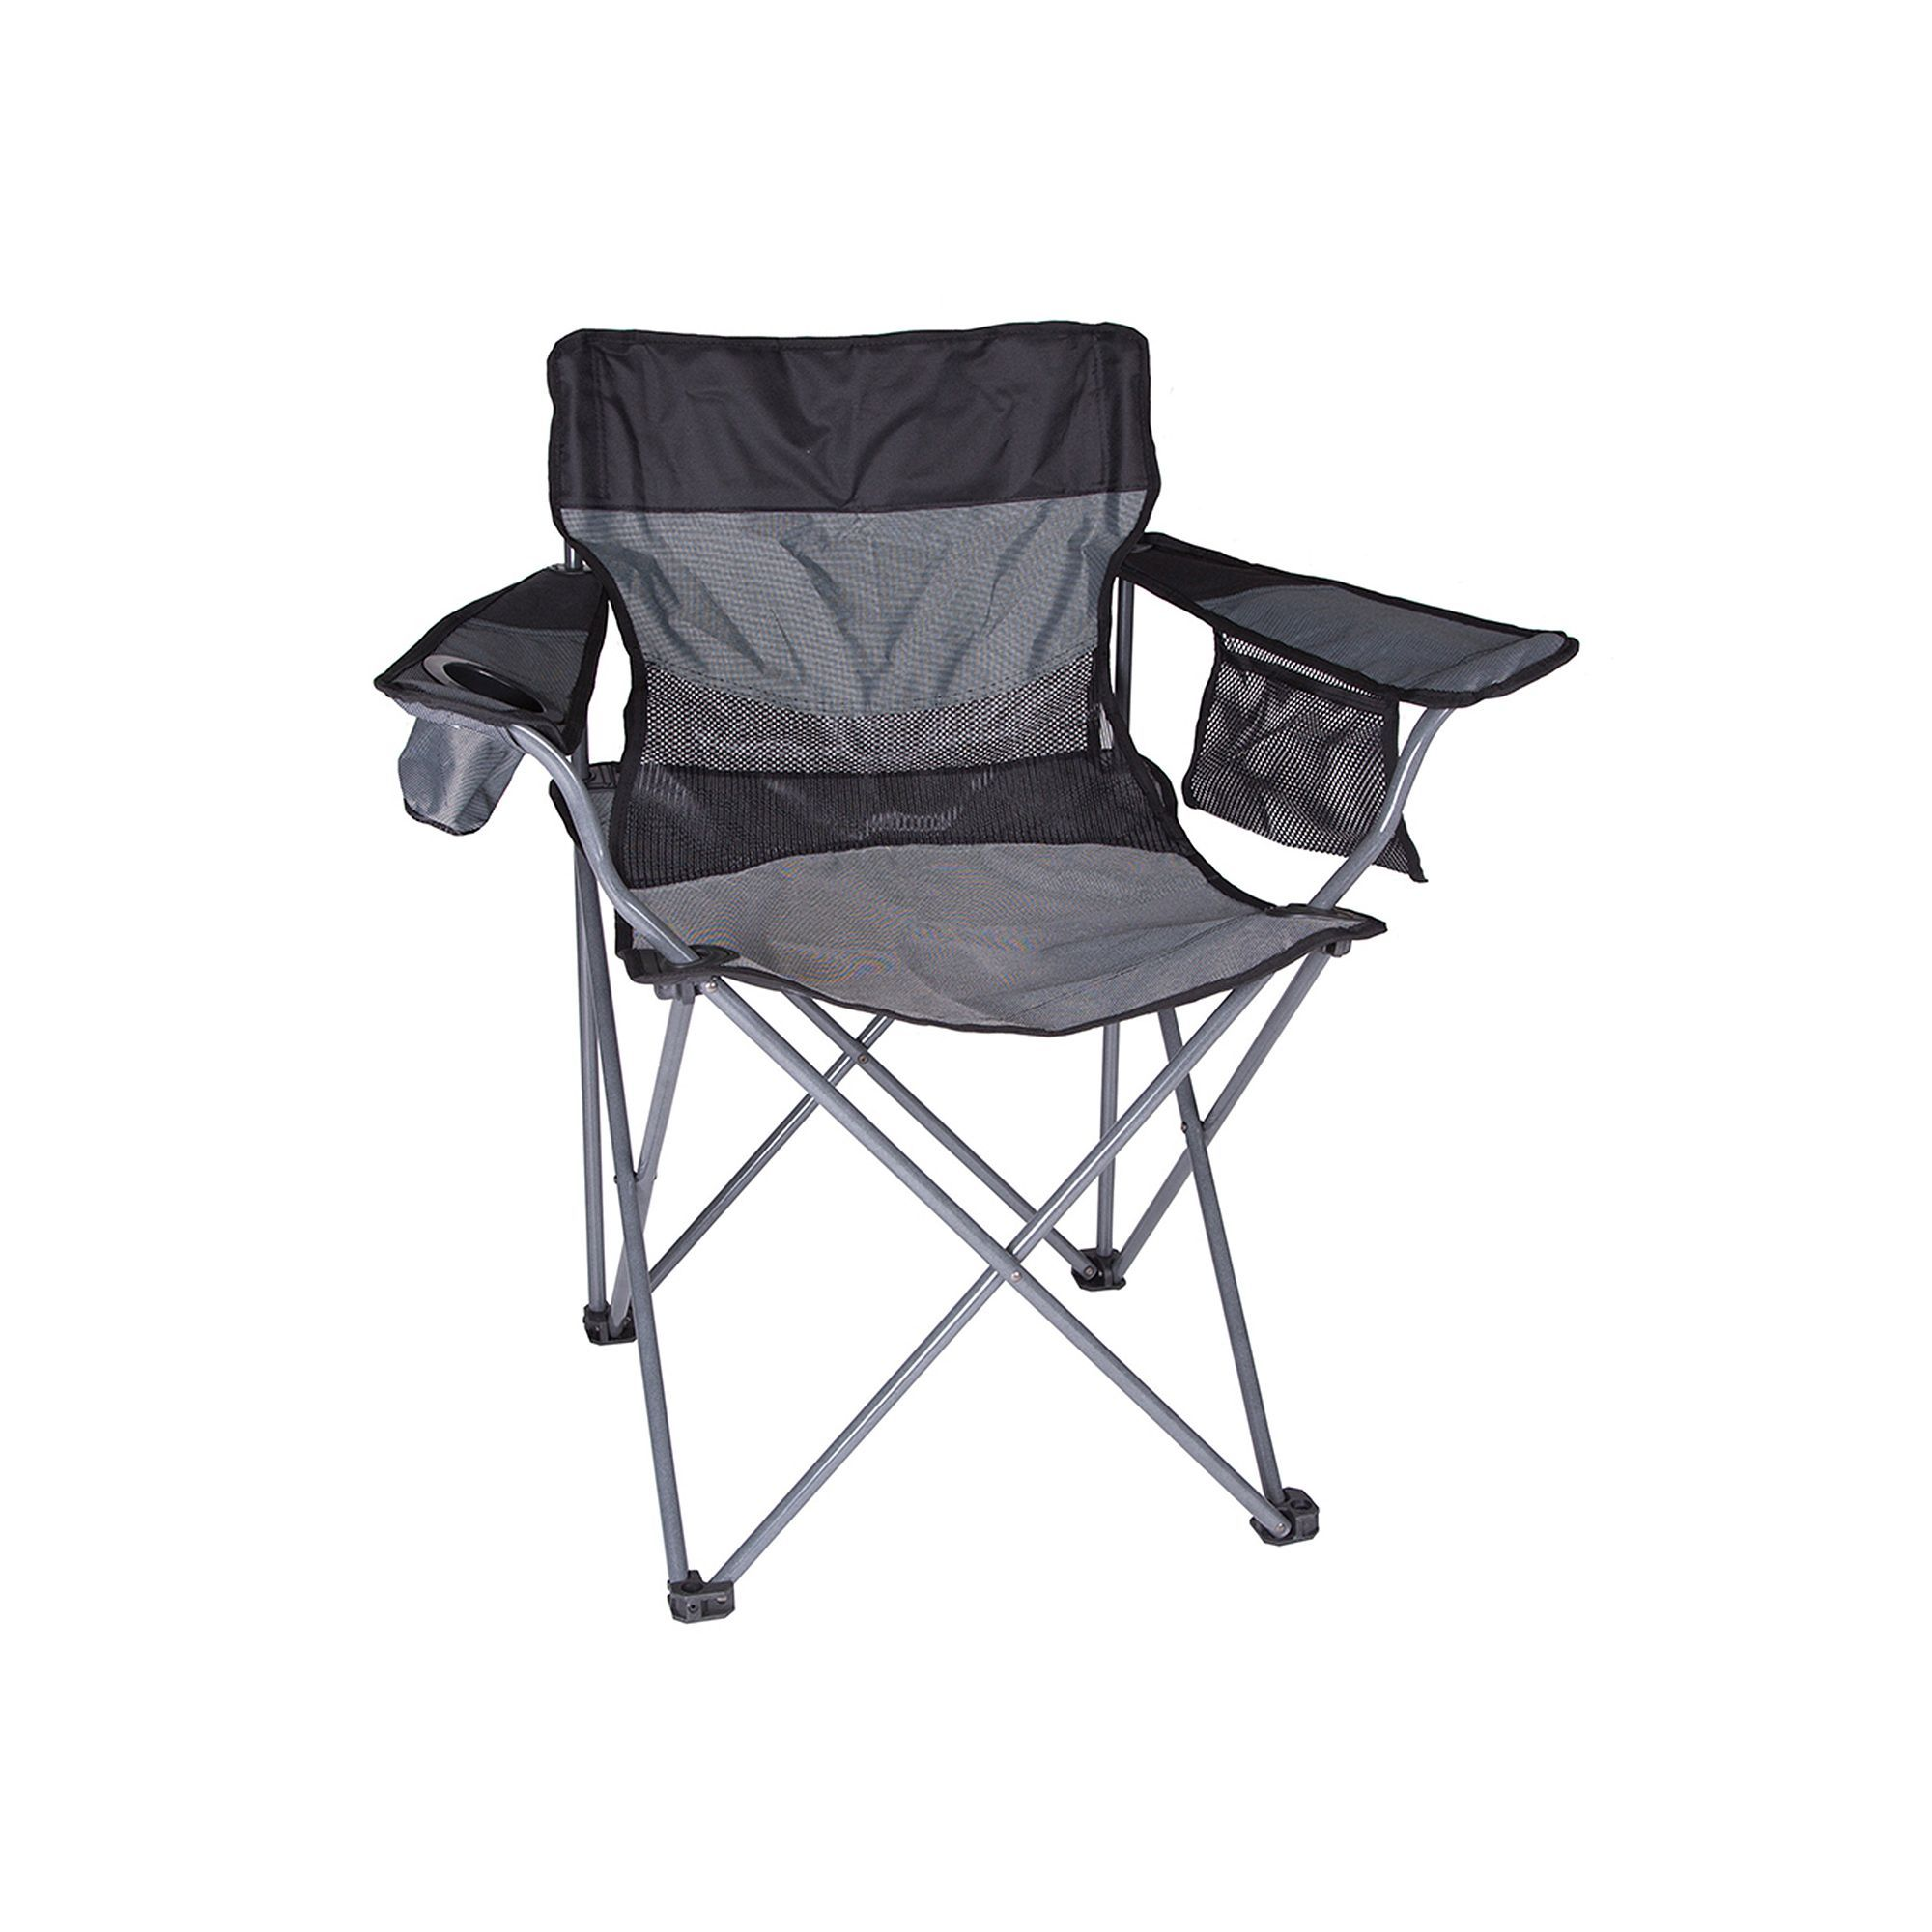 Outdoor Stansport Apex Deluxe Oversize Camp Chair, Black